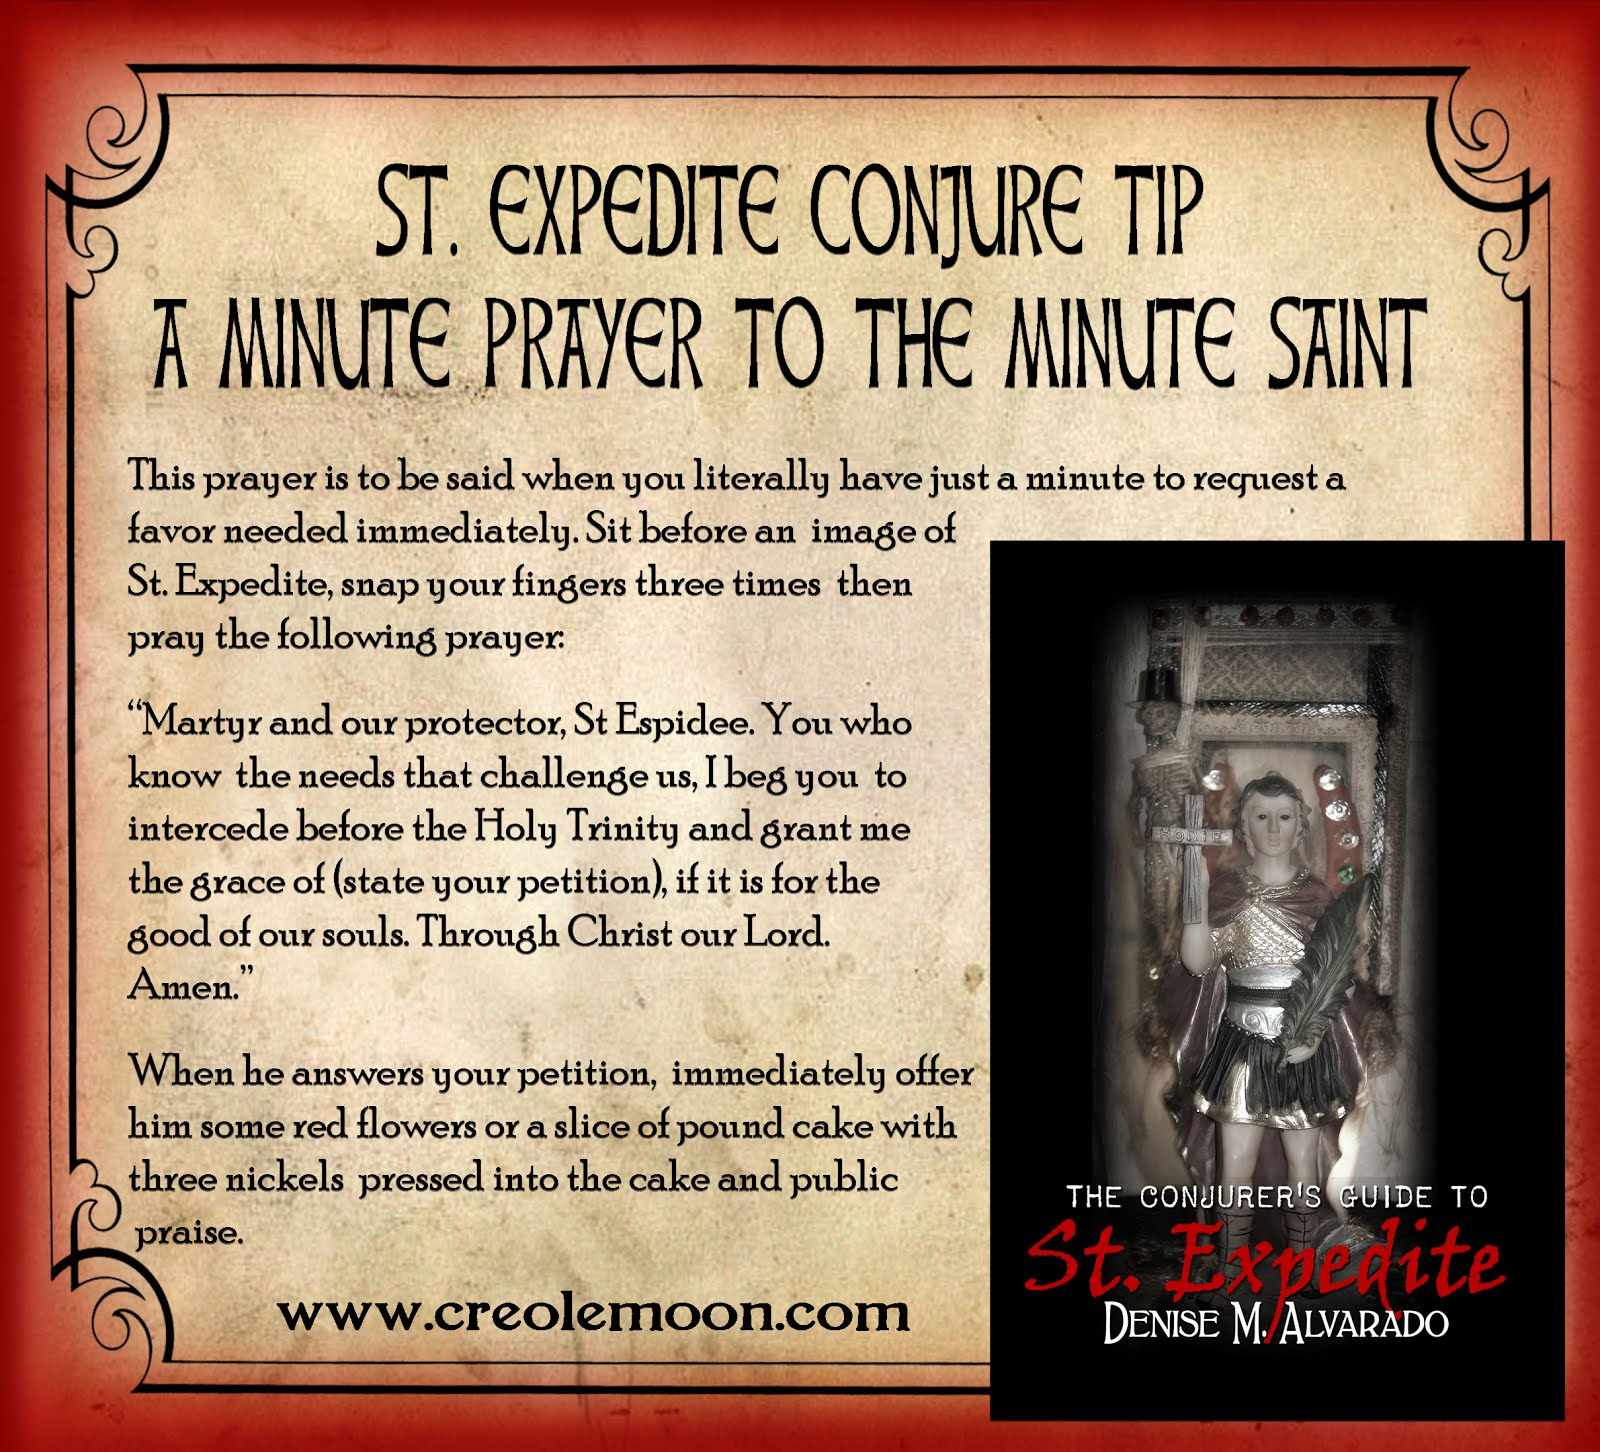 A Minute Prayer to the Minute Saint